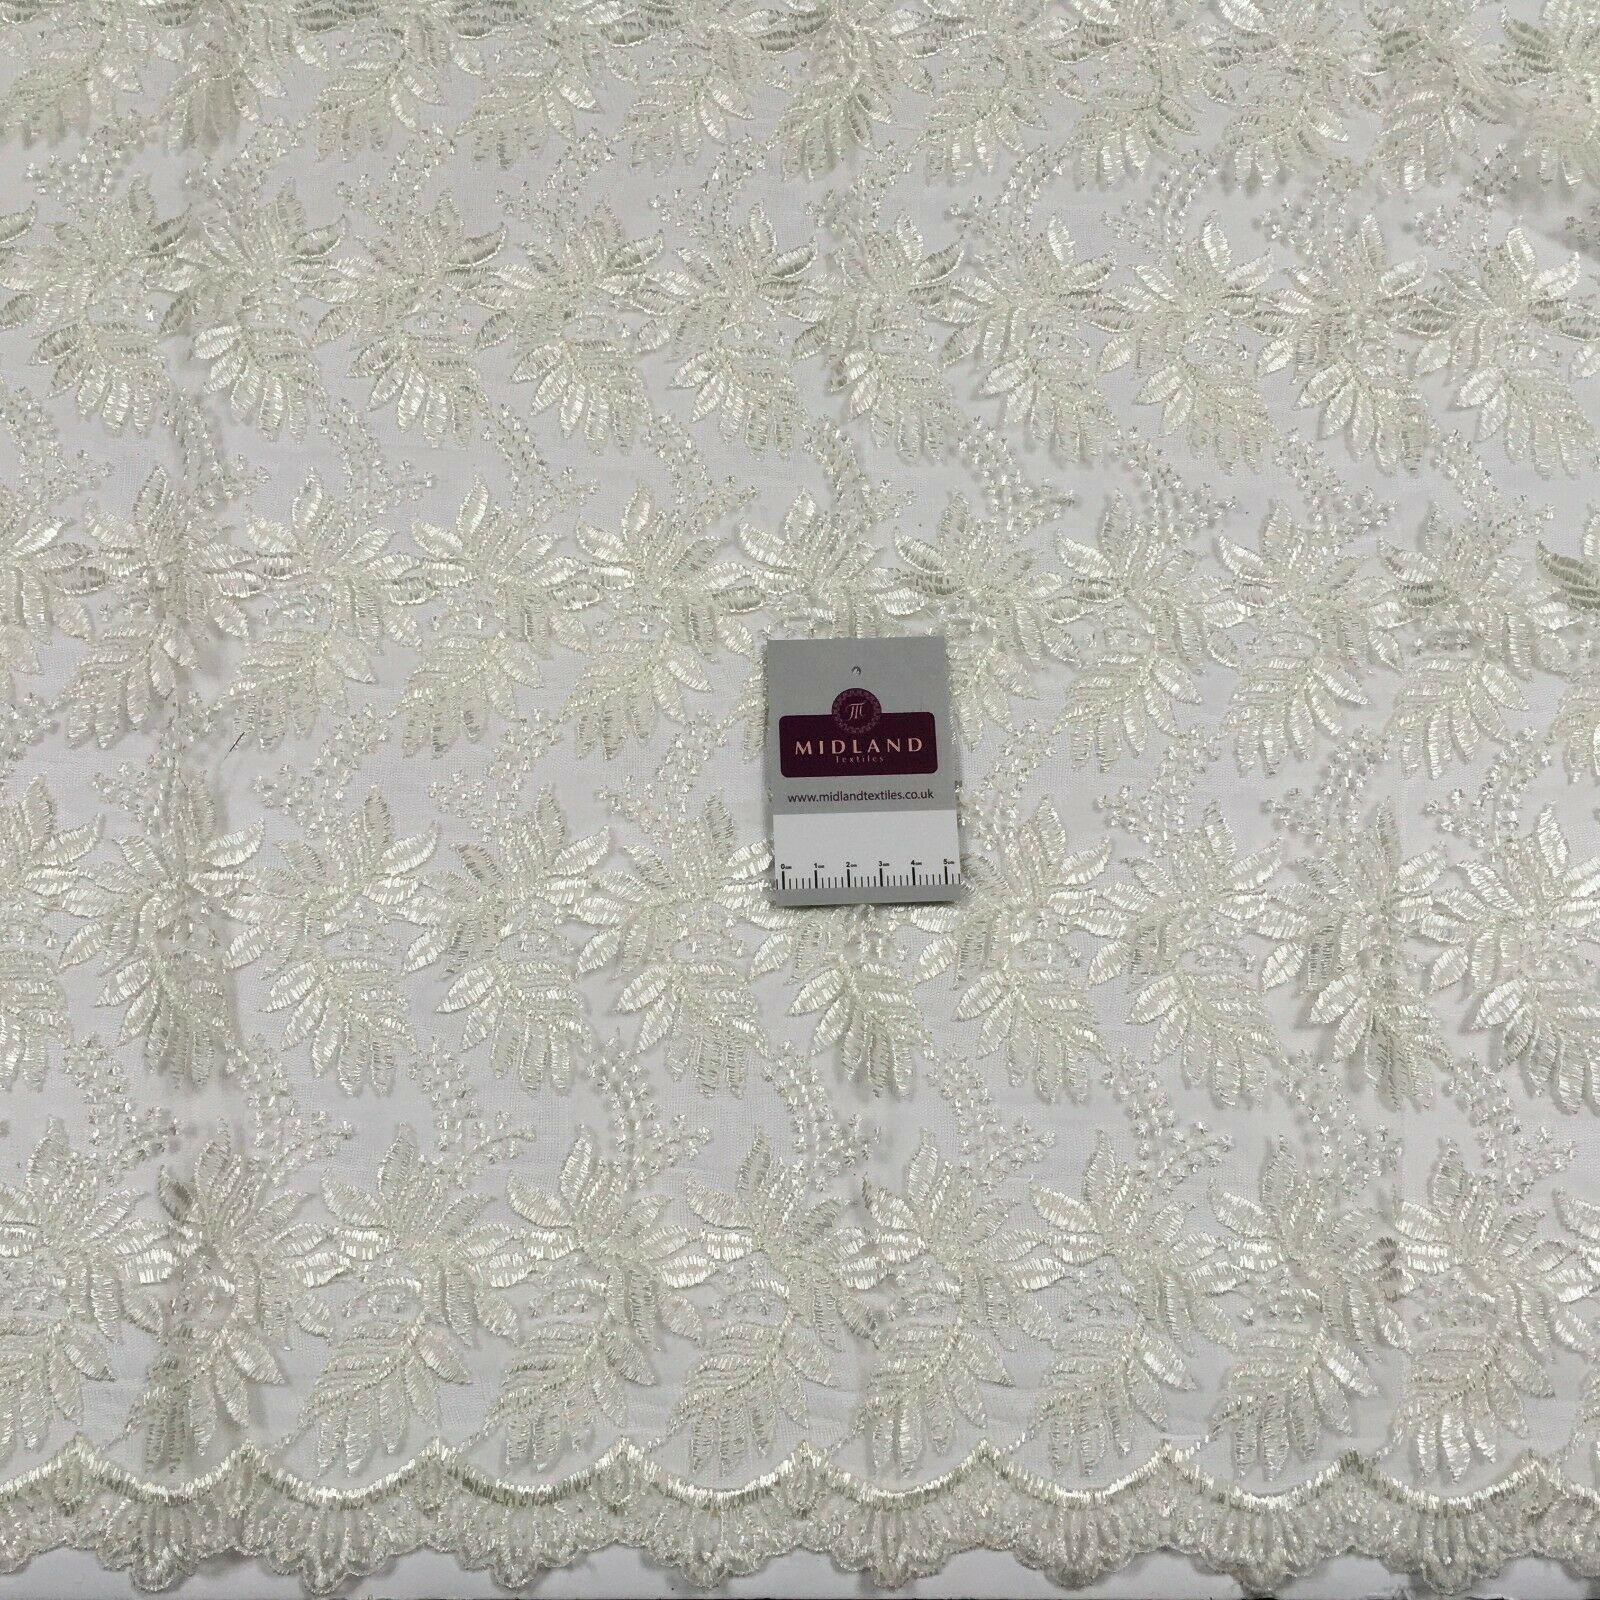 Embroidered Floral Tulle Net wedding dress Fabric 100 cm MK1370 Mtex